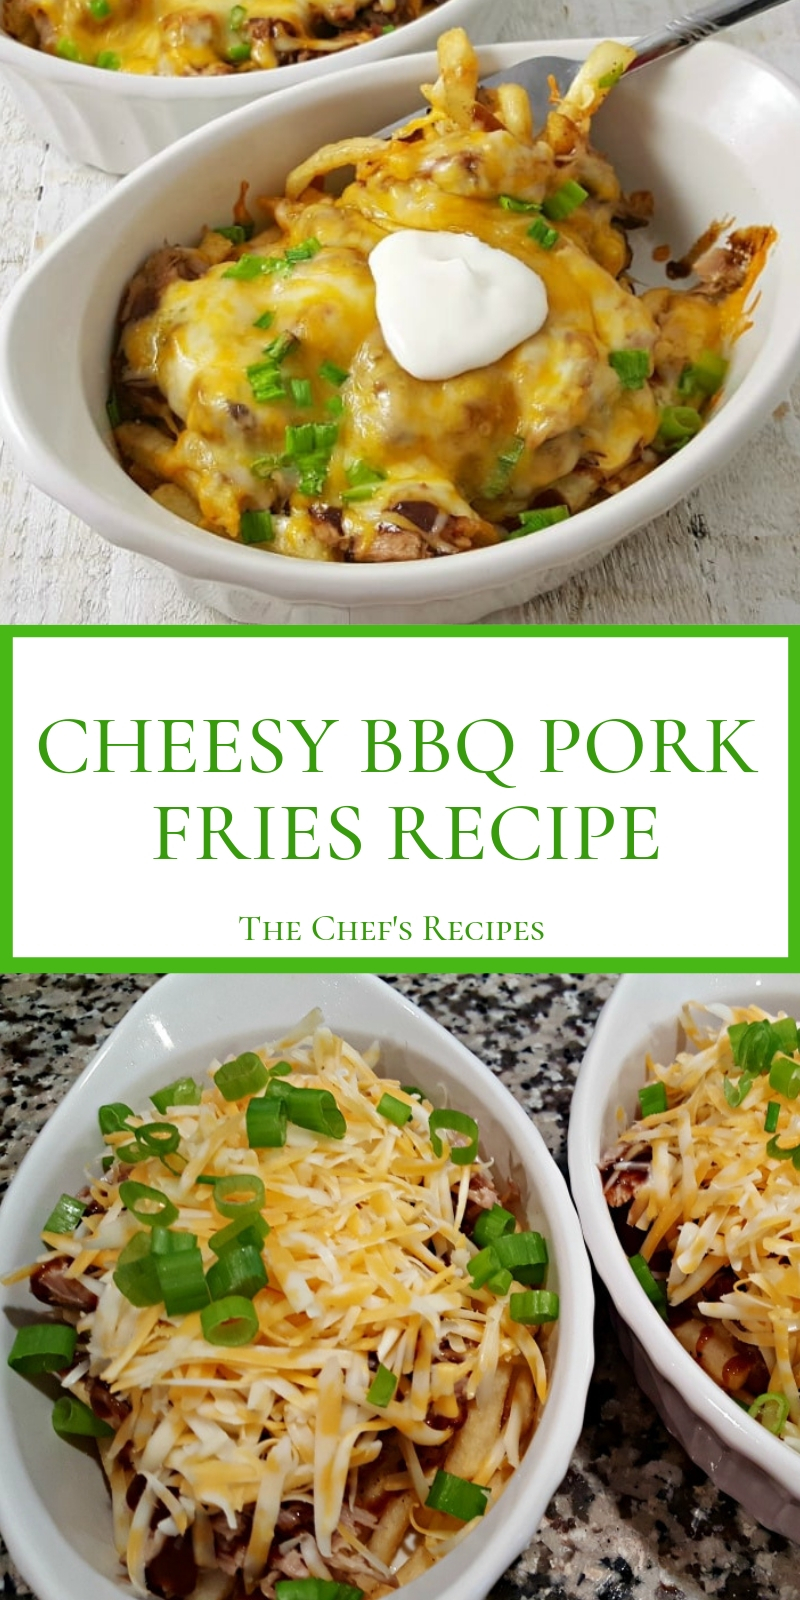 CHEESY BBQ PORK FRIES RECIPE